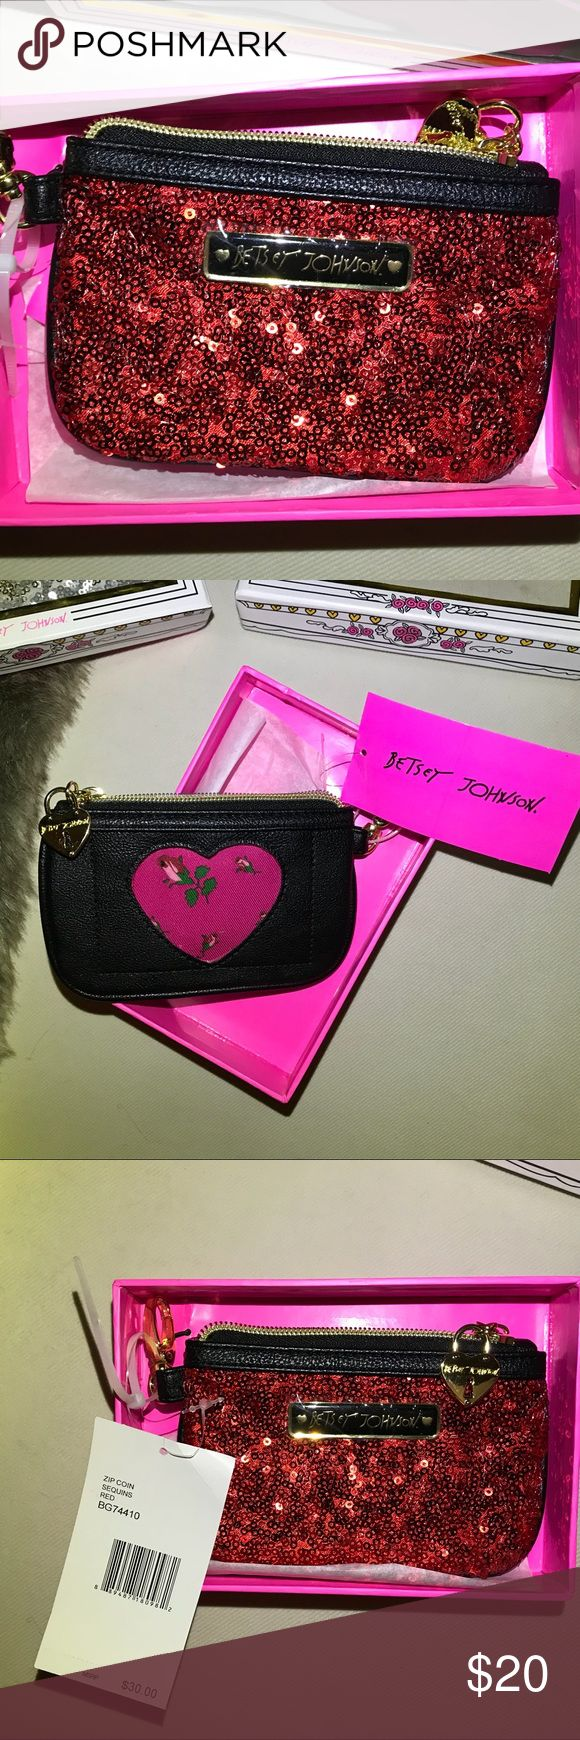 """Betsey Johnson sequins coin purse Red sparkly Betsey Johnson coin purse/ key chain or purse charm. Black-side has a Heart Id   Window. Gold Heart lock for zipper pull. logo plate on front . Pink interior. 6"""" width 3 3/4 height. New with Tags In box. Betsey Johnson Bags Wallets"""